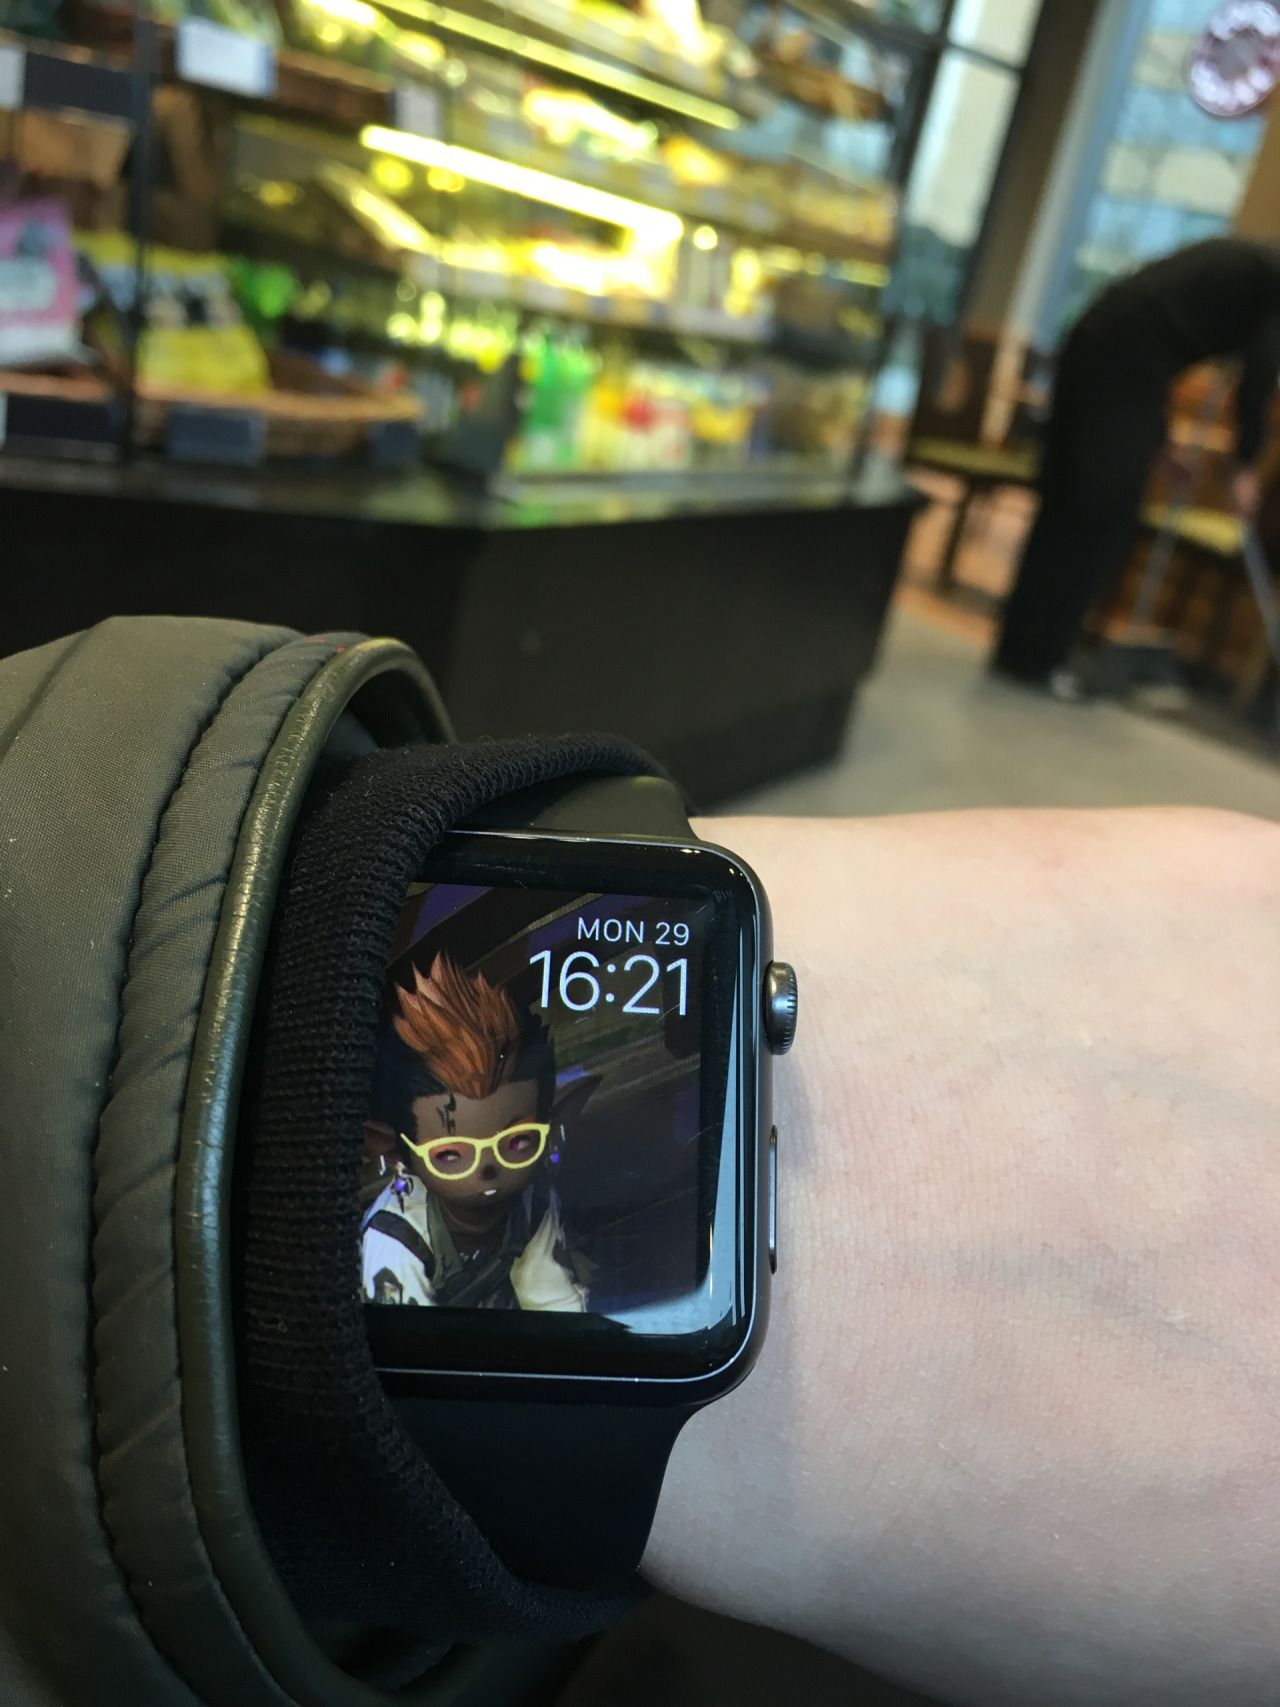 As much as this was suppose to look like a joke it makes a really good watch face eh? @askremquick